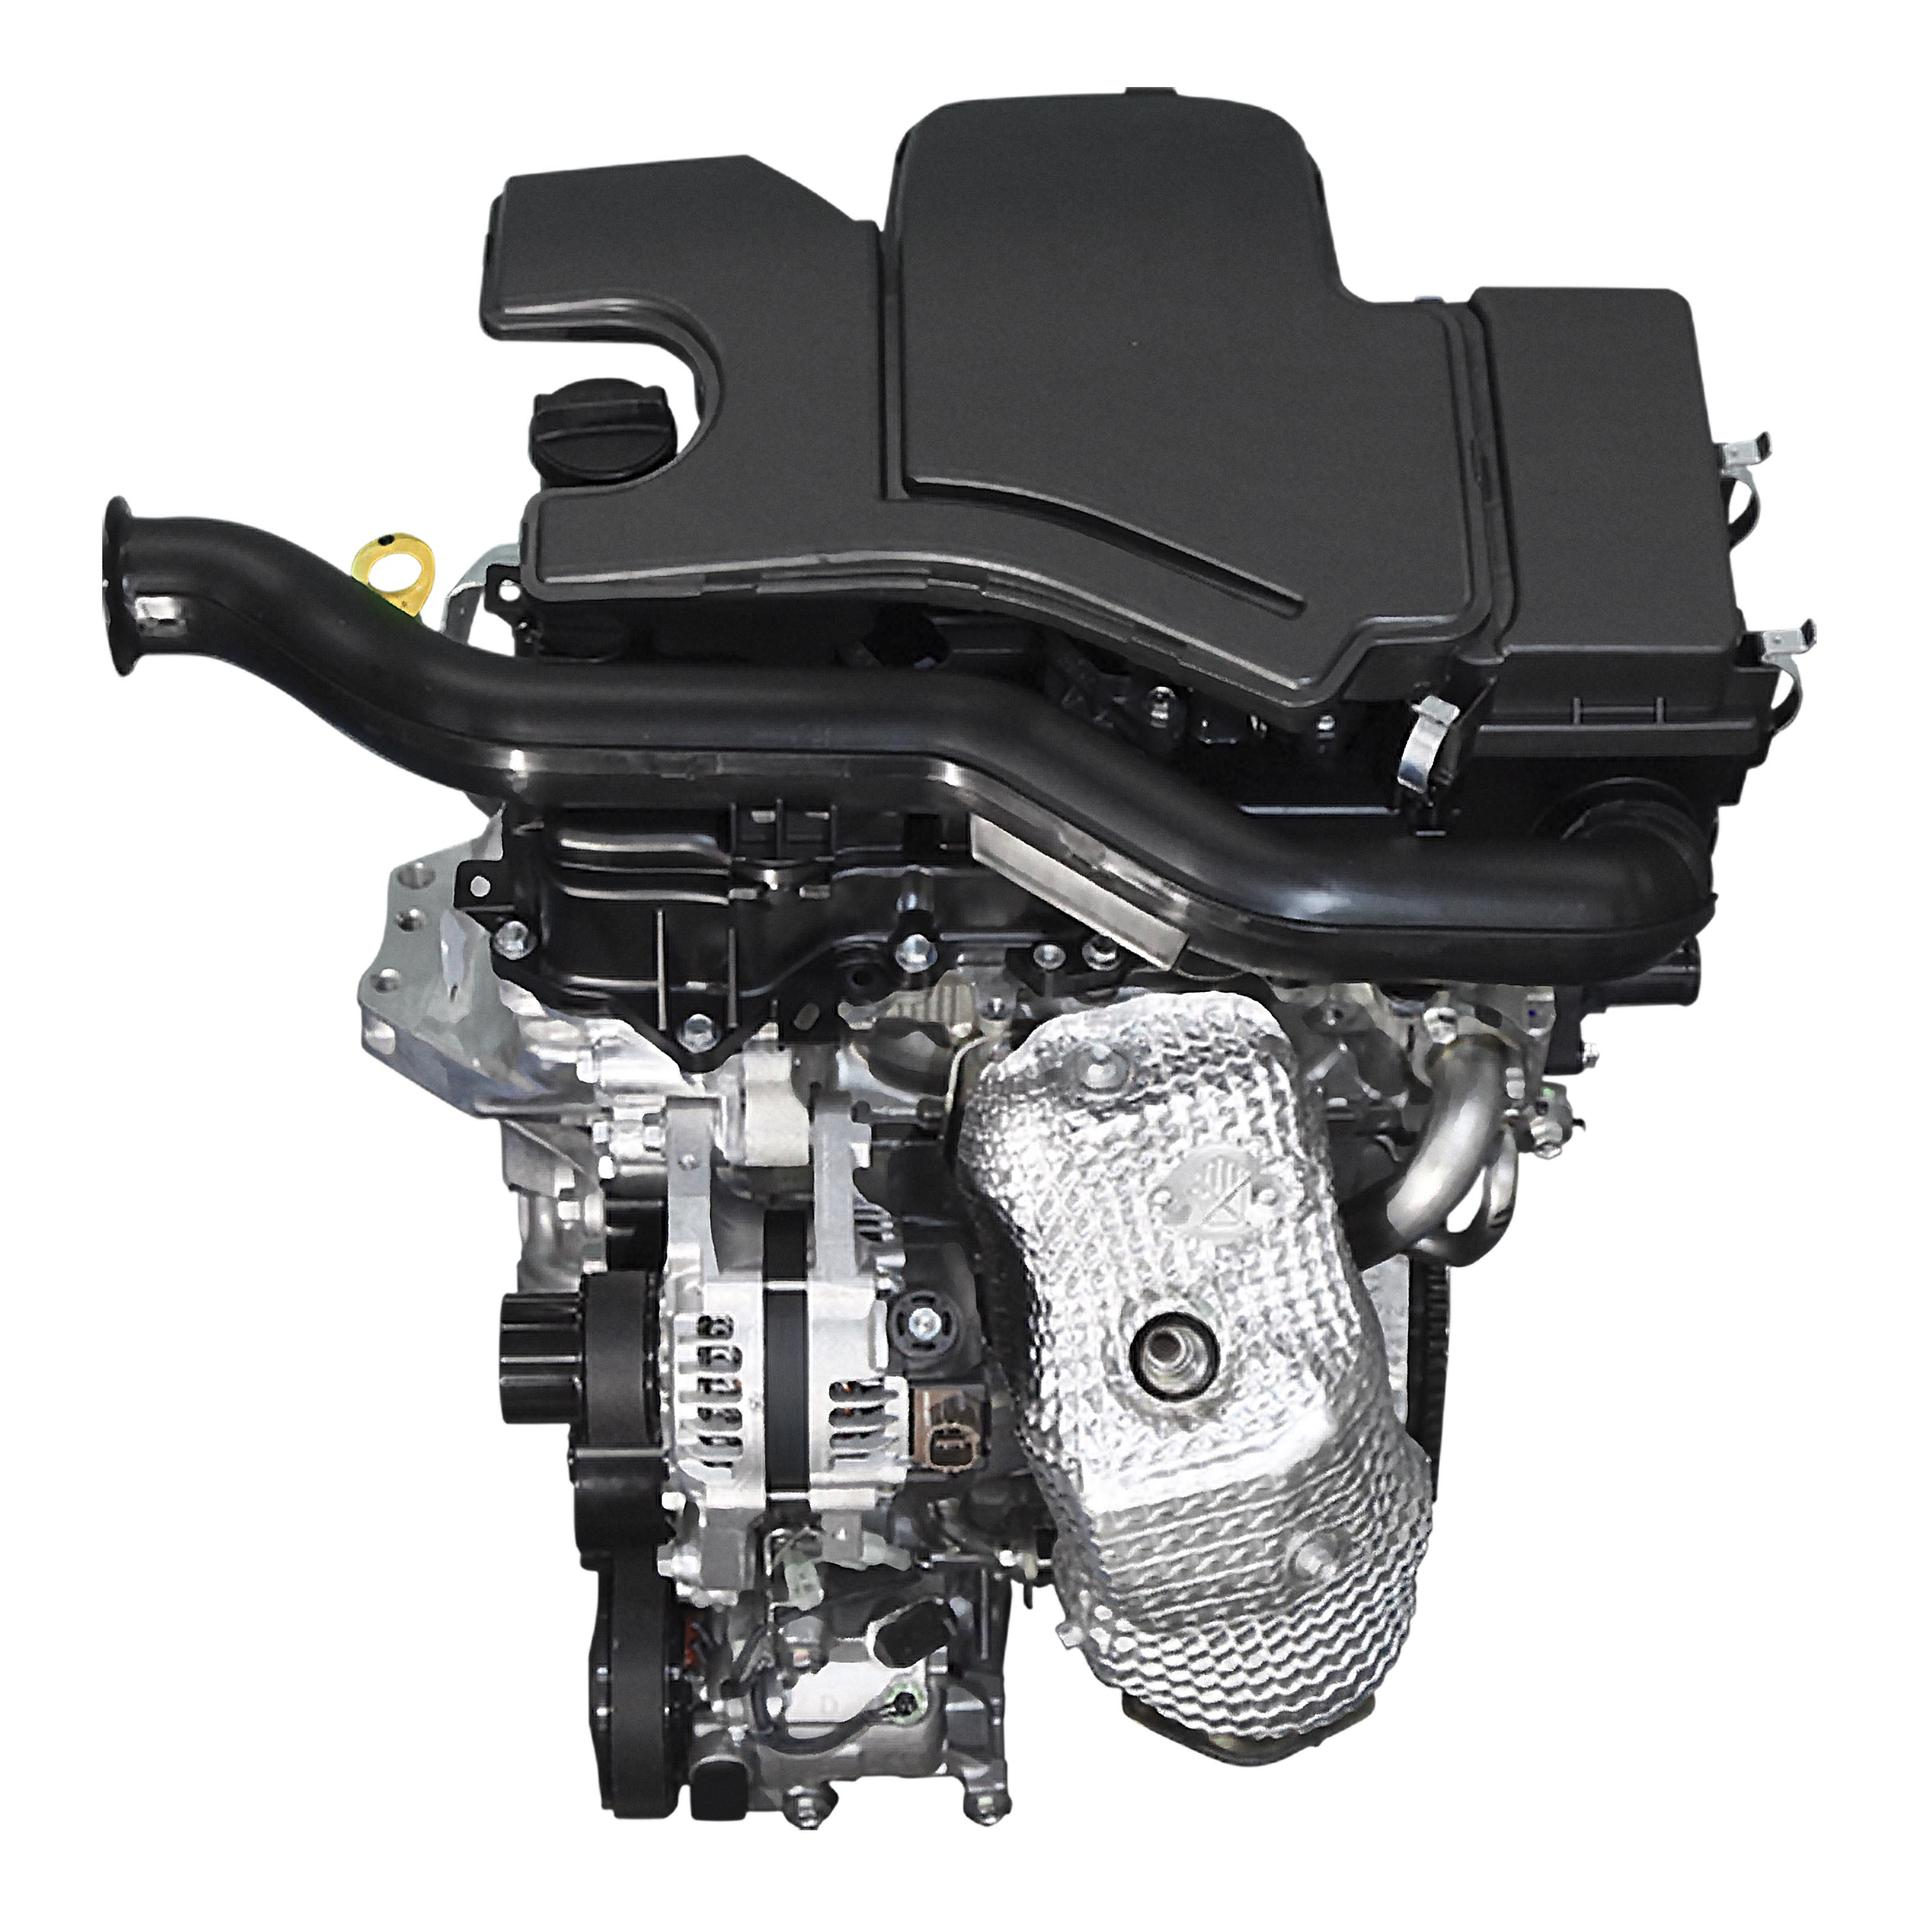 2014 Yaris Engine